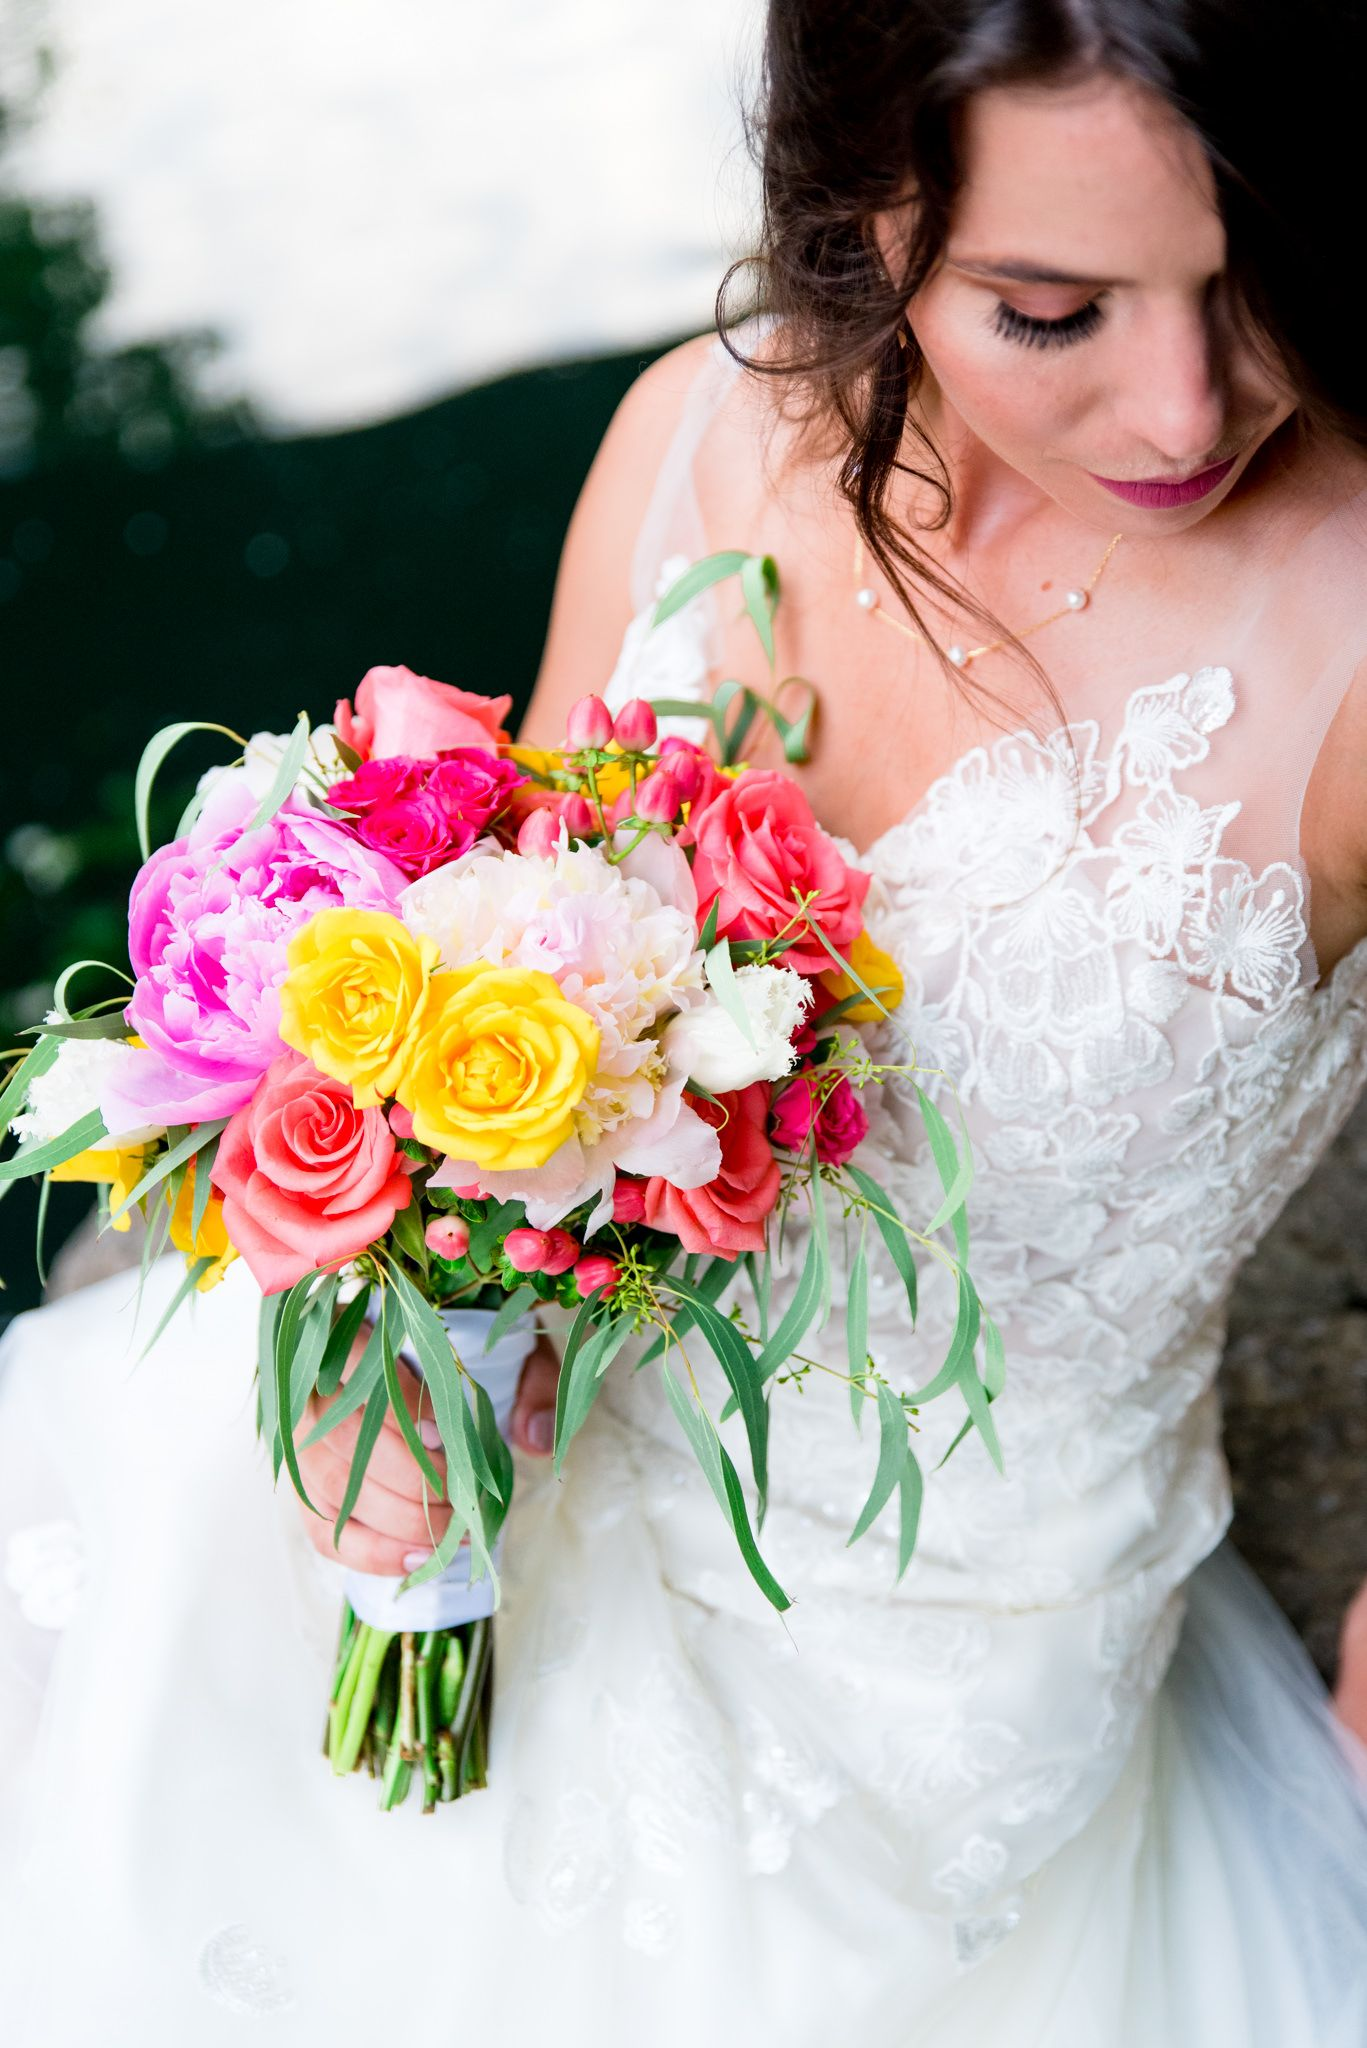 brown hair bride holding yellow and pink bouquet, wearing Serafina Gown by Kelly Faetanini